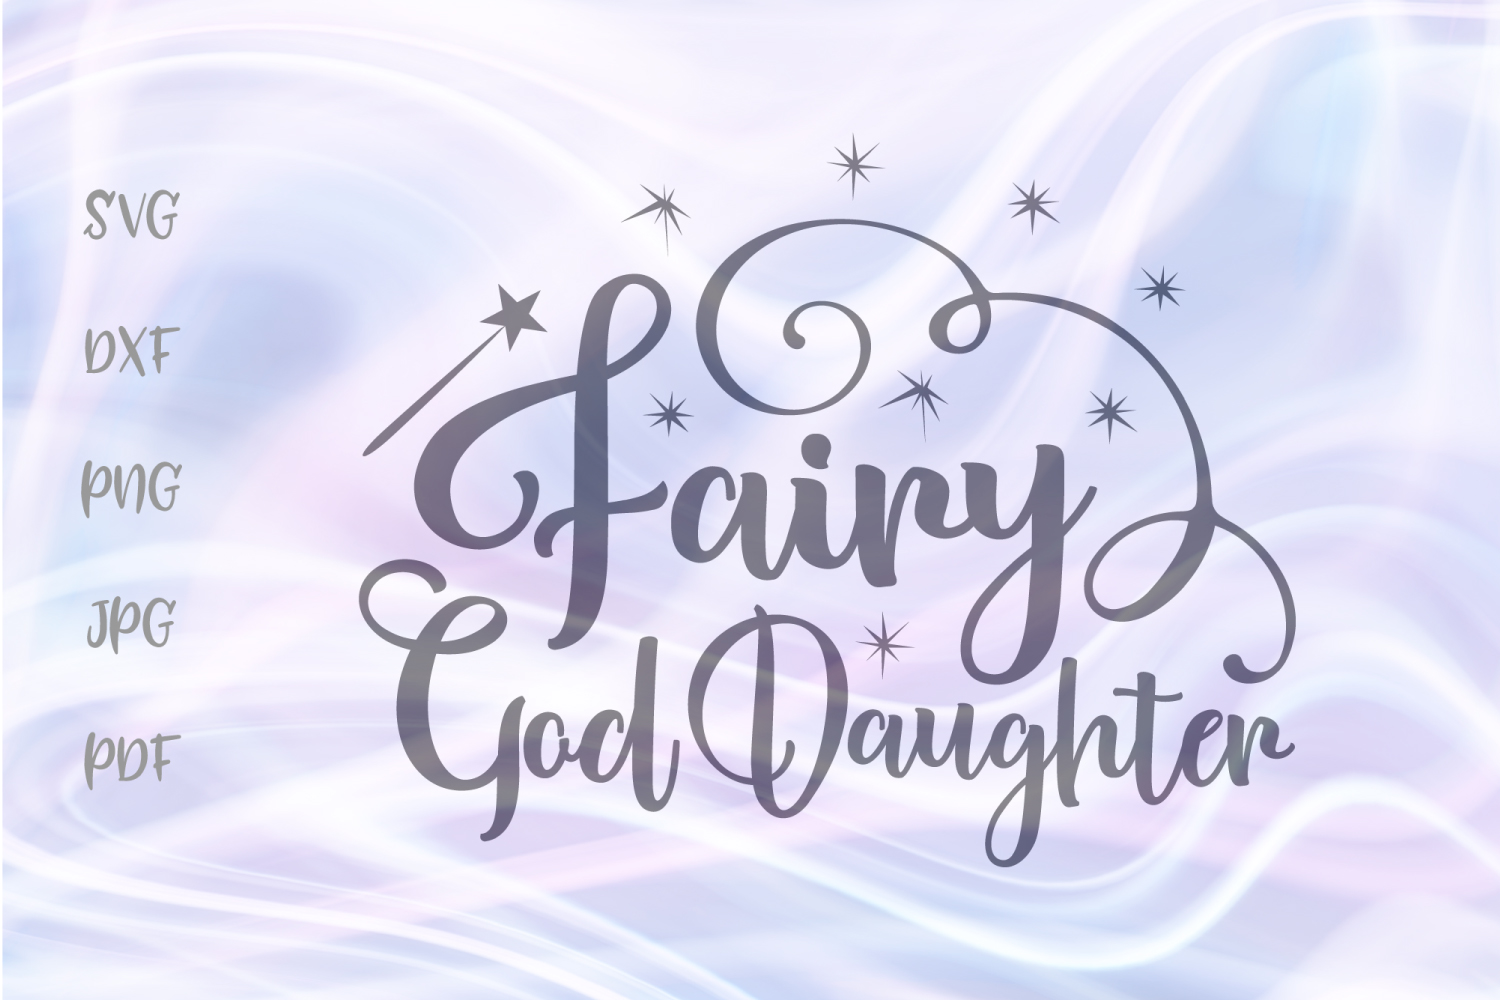 Download Free Fairy God Daughter For Cricut Vector Graphic By Digitals By for Cricut Explore, Silhouette and other cutting machines.